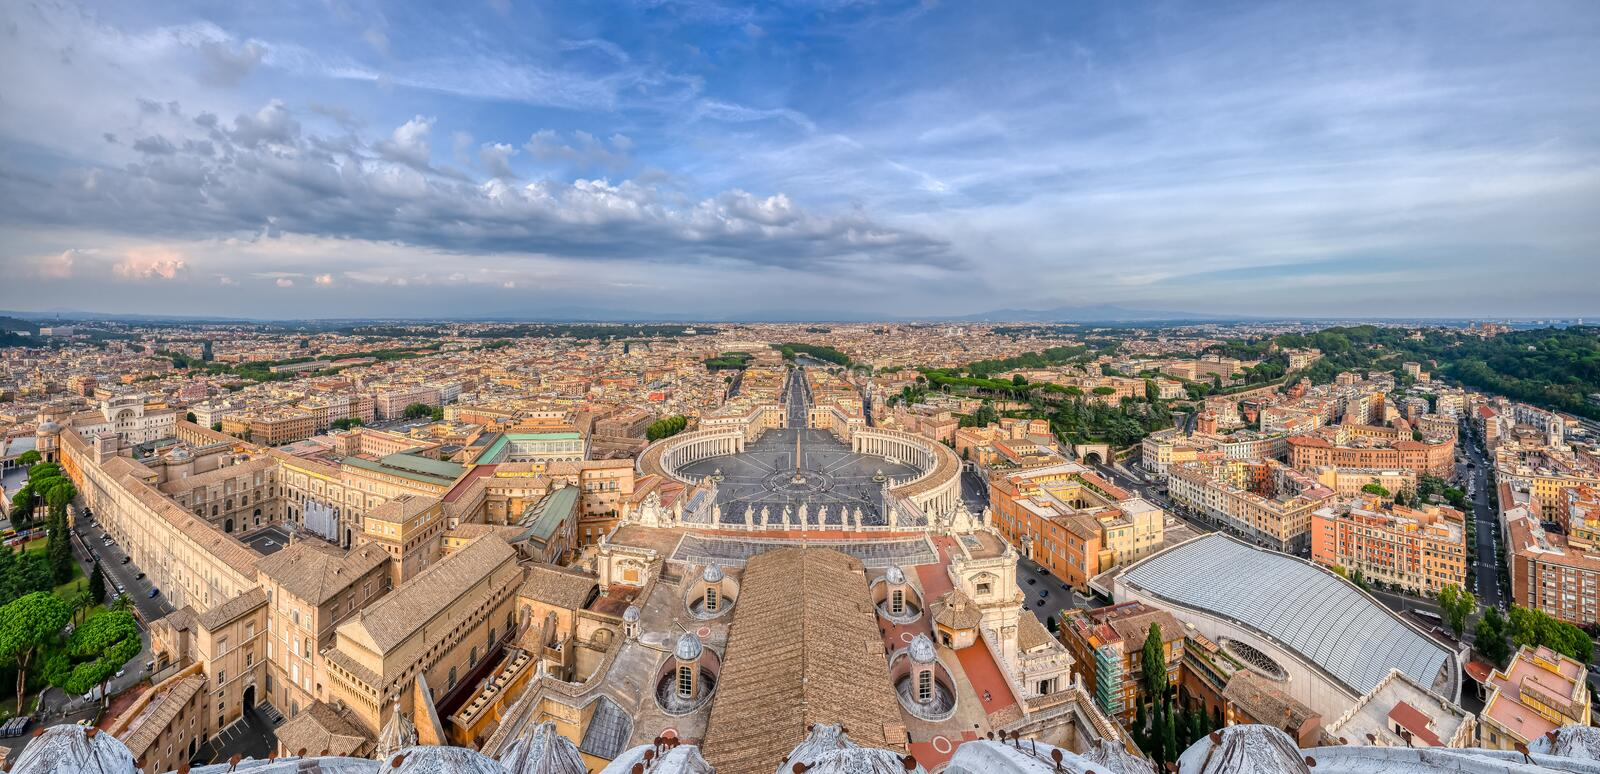 Panorama of Rome from top of the Vatican Dome in Italy stock image